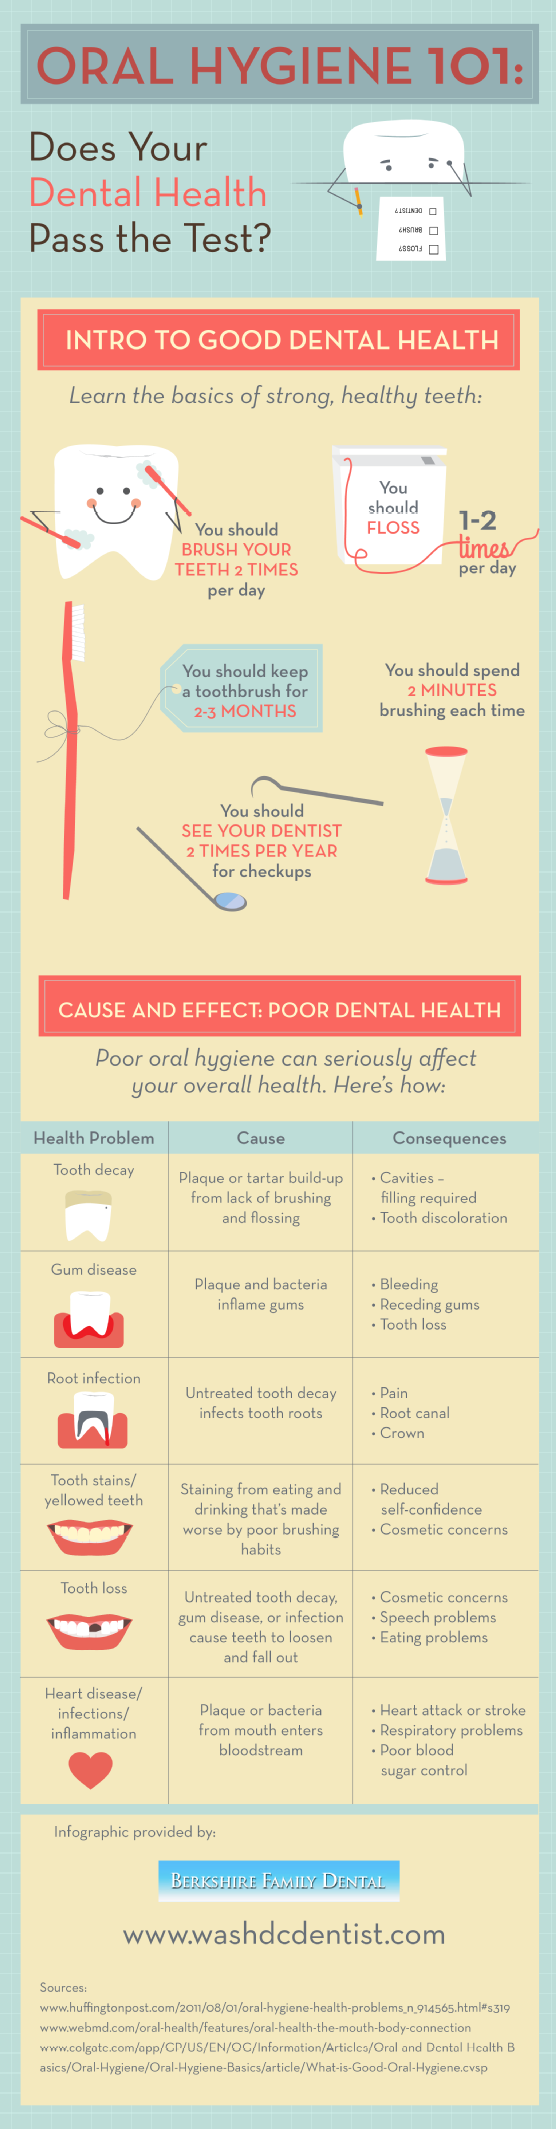 oral-hygiene-101-does-your-dental-health-pass-the-test